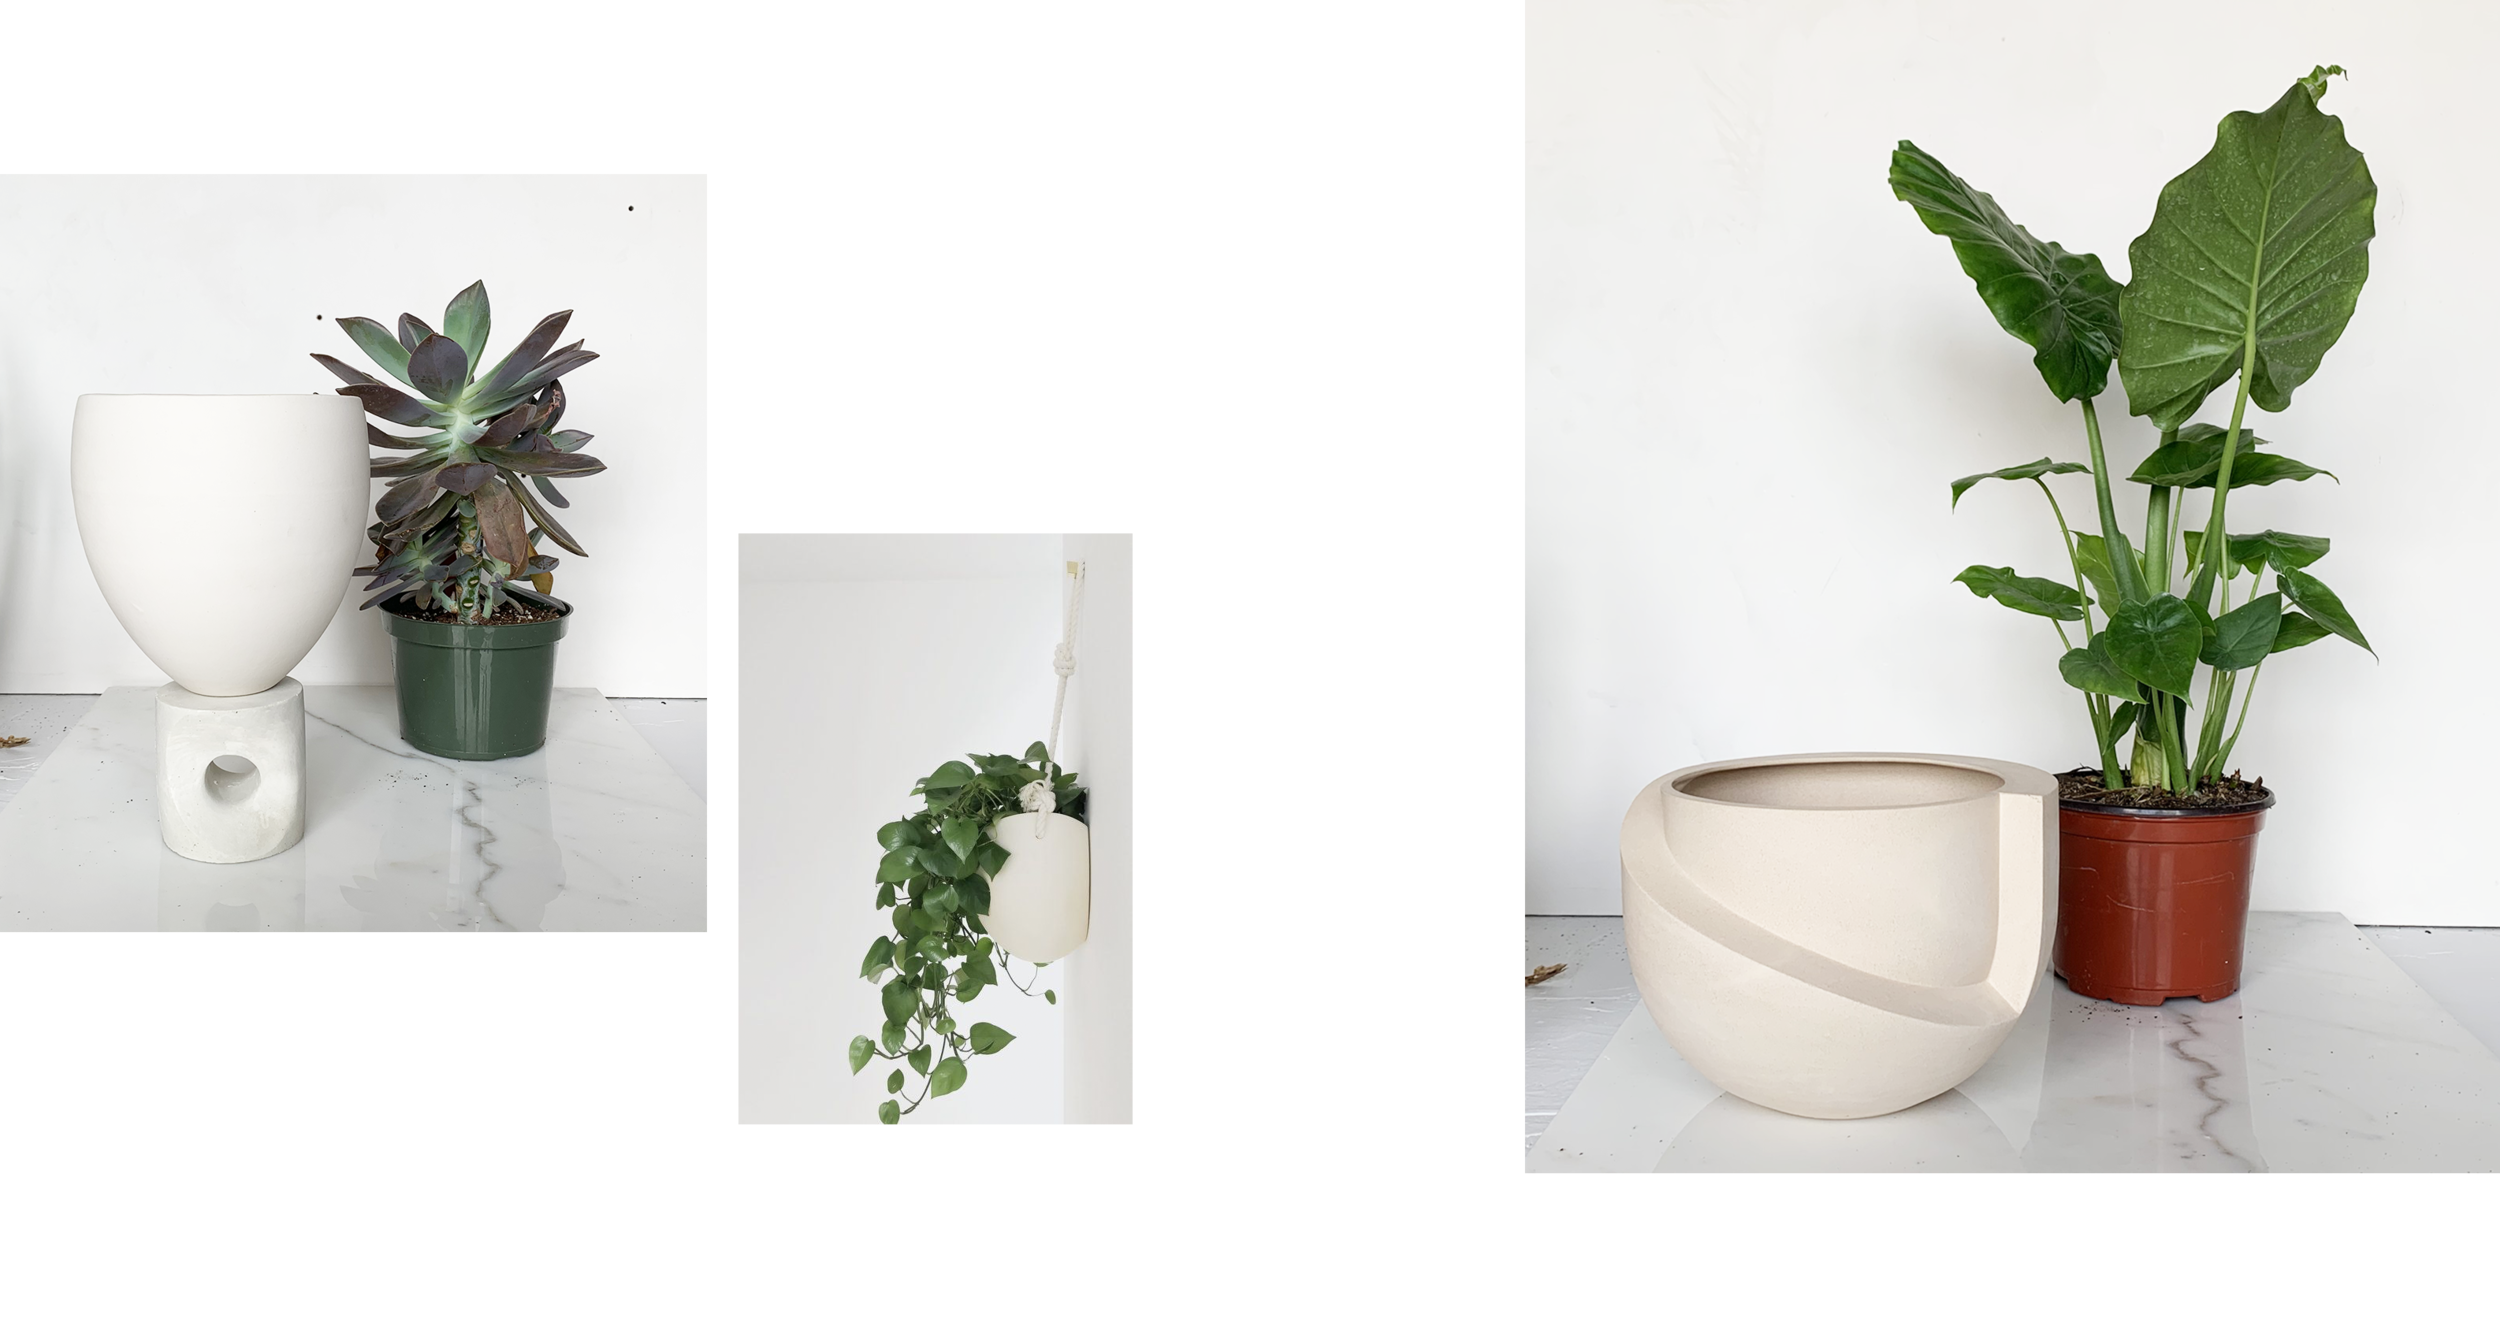 """6 INCH PLANTS   6 inch plants are perfect for  ELEVA ,  LARGE SPORA ,  BRASS SPORA  and  VAYU .  6"""" plants can be placed directly inside VAYU in their plastic pots. VAYU will act as its own drainage tray. See 'HOW TO PLANT WITH VAYU' above."""